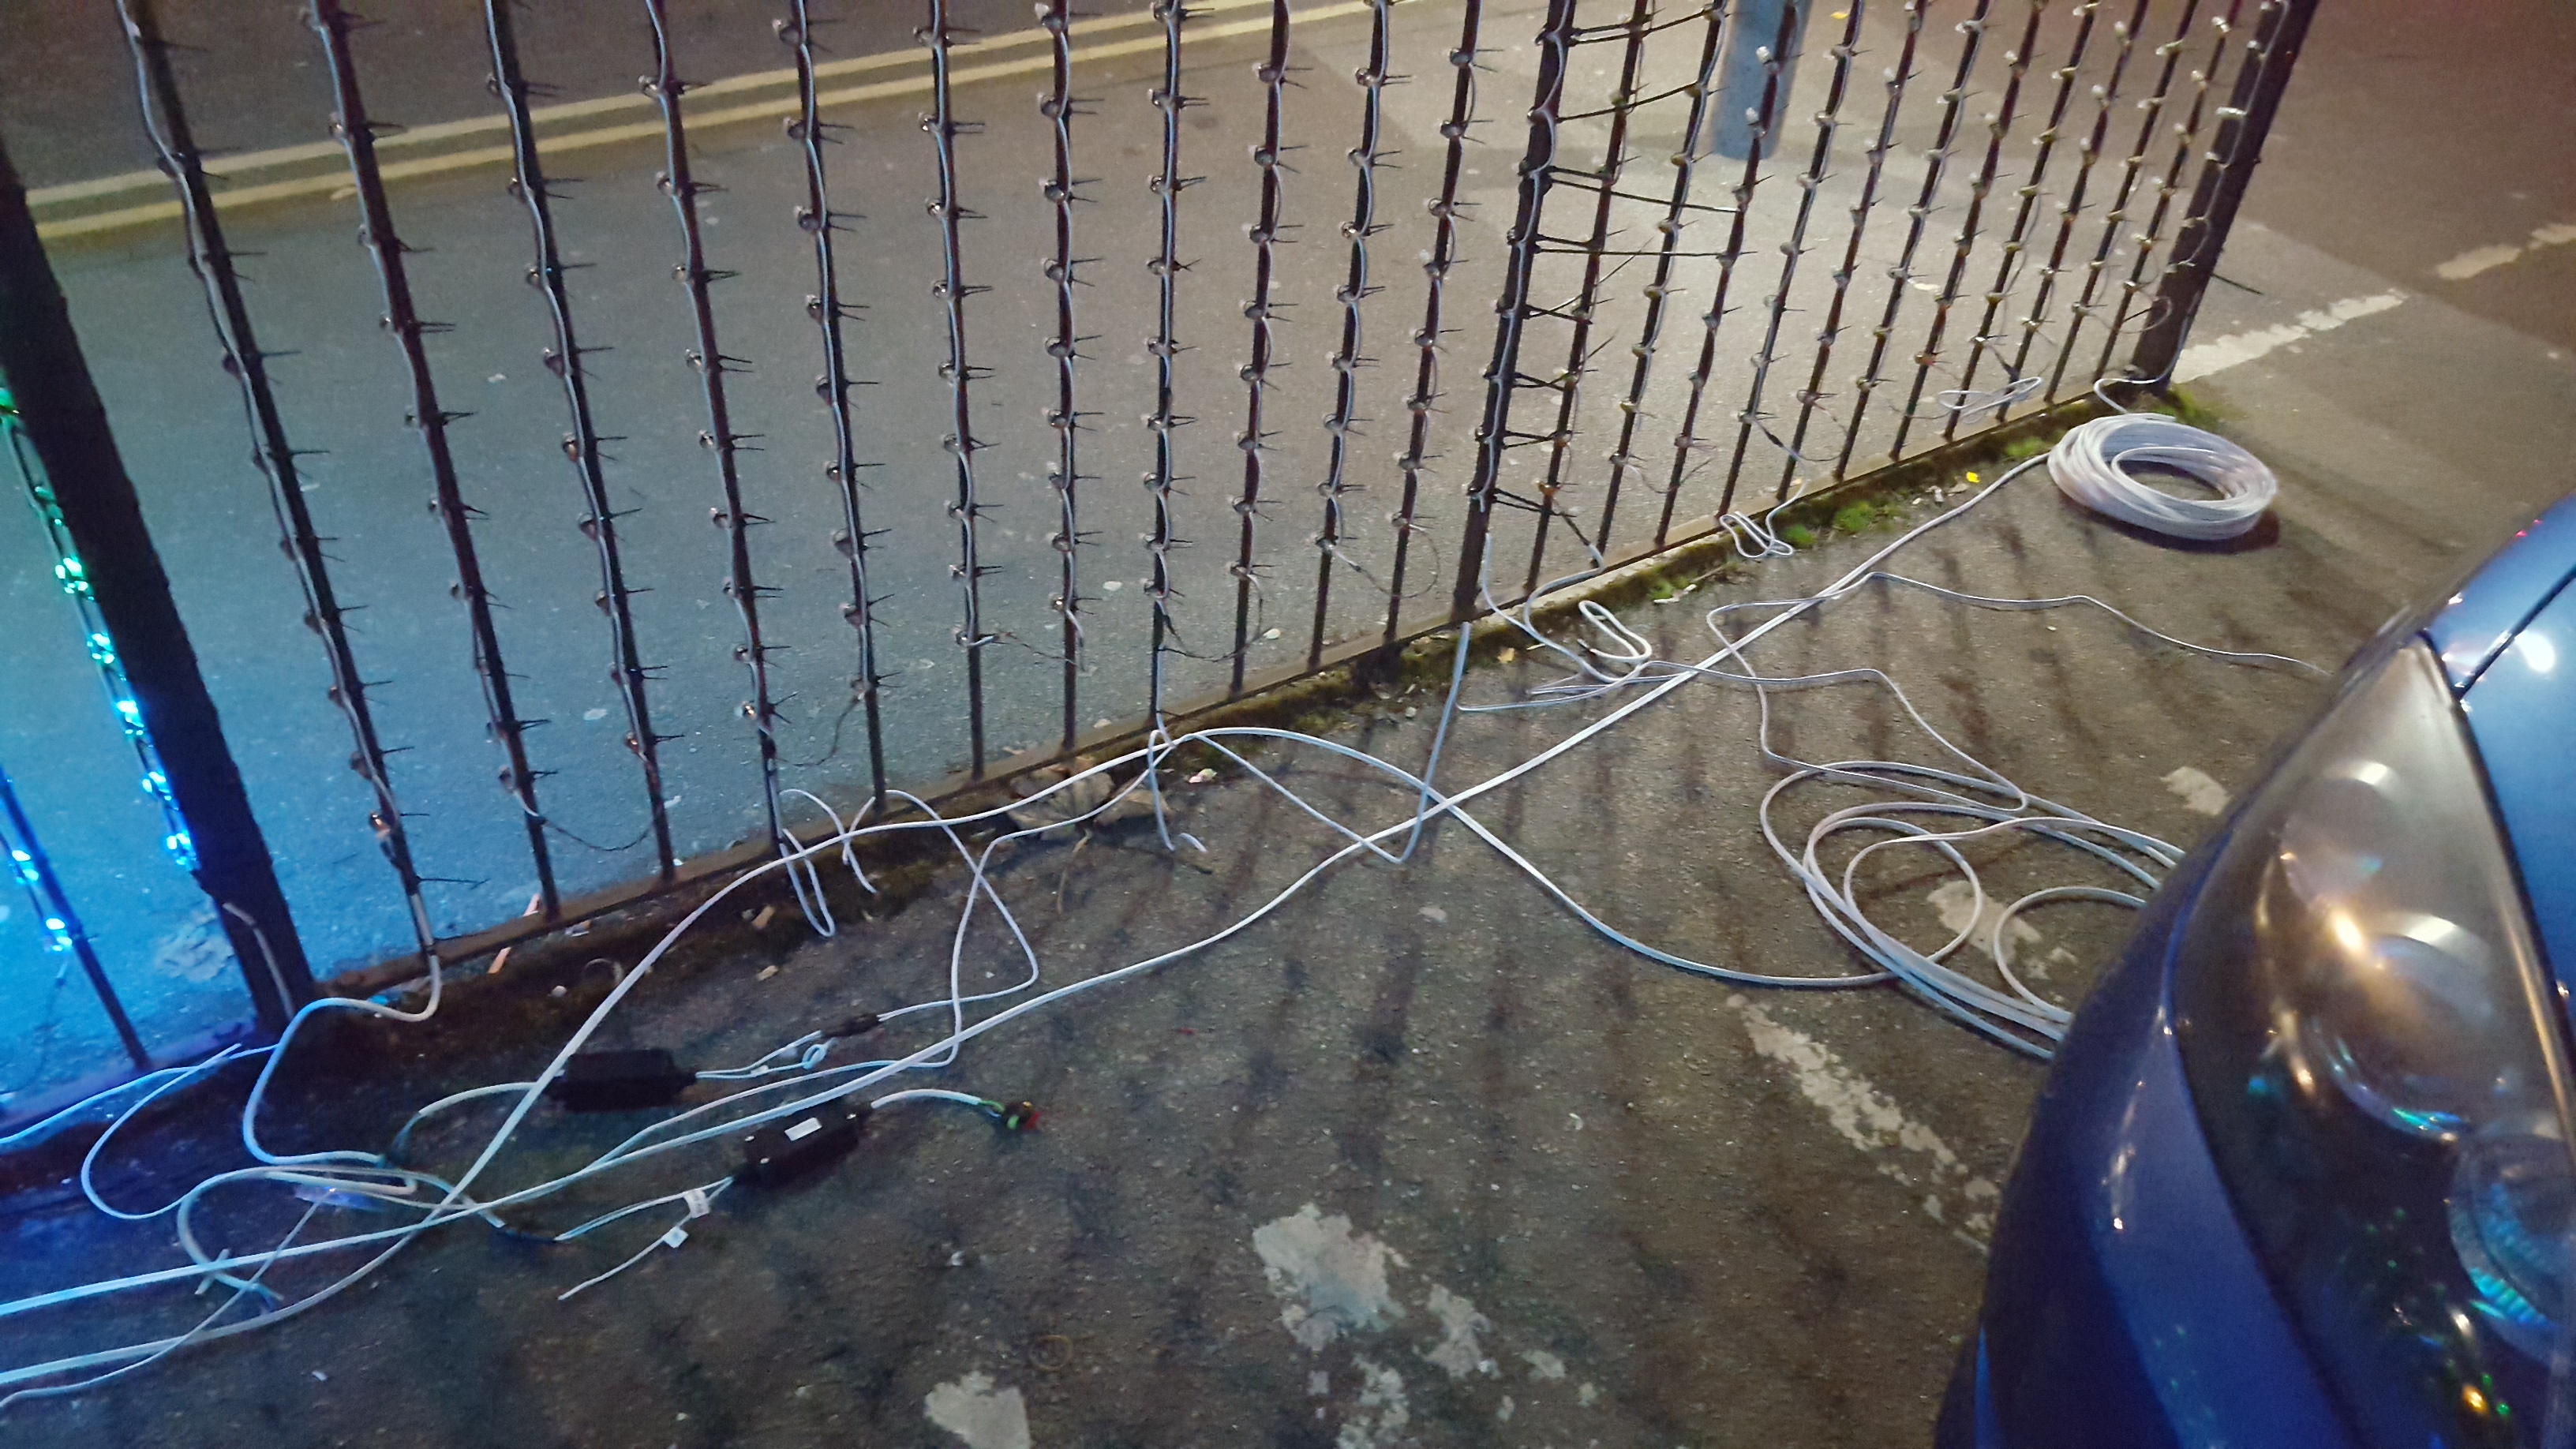 Ws2811 Tom Hopkins Christmas Light Wiring Diagram 3 Wire Besides String Lights Any Thicker Cable Than This Would Be Allot More Expensive And Also A Struggle To Fit Through Glands Into Crimps